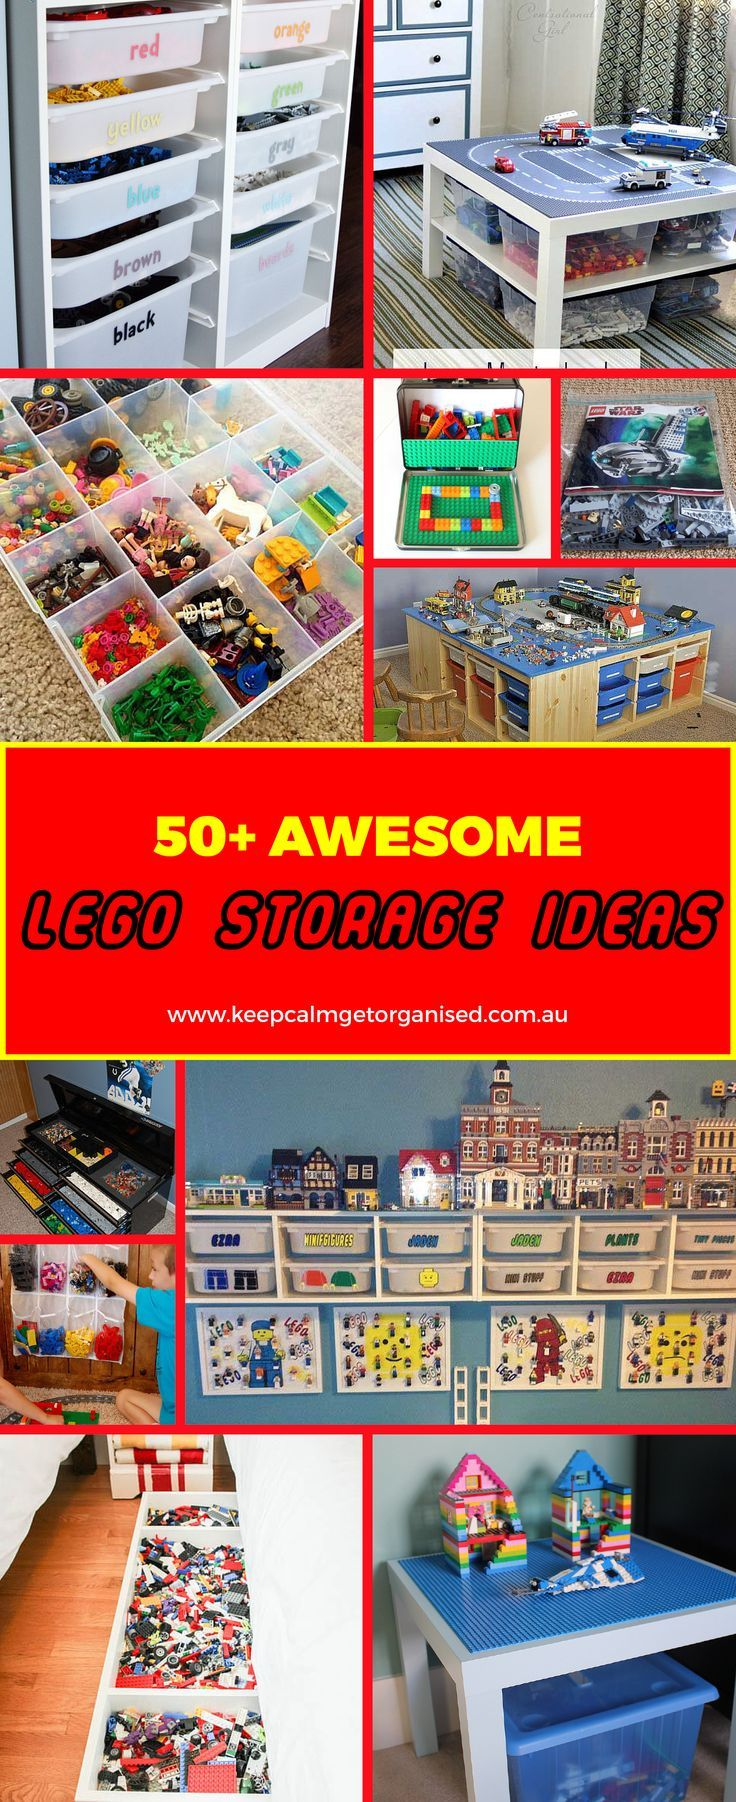 Here's a major list of inspiration for LEGO storage ideas. From over the closet shoe holders where bricks can be sorted by color or size, to repurposed tool boxes, under the bed storage, and tackle boxes! There so so many ways to creatively sort and store your LEGO bricks! You're bound to find a few really cool ideas here!